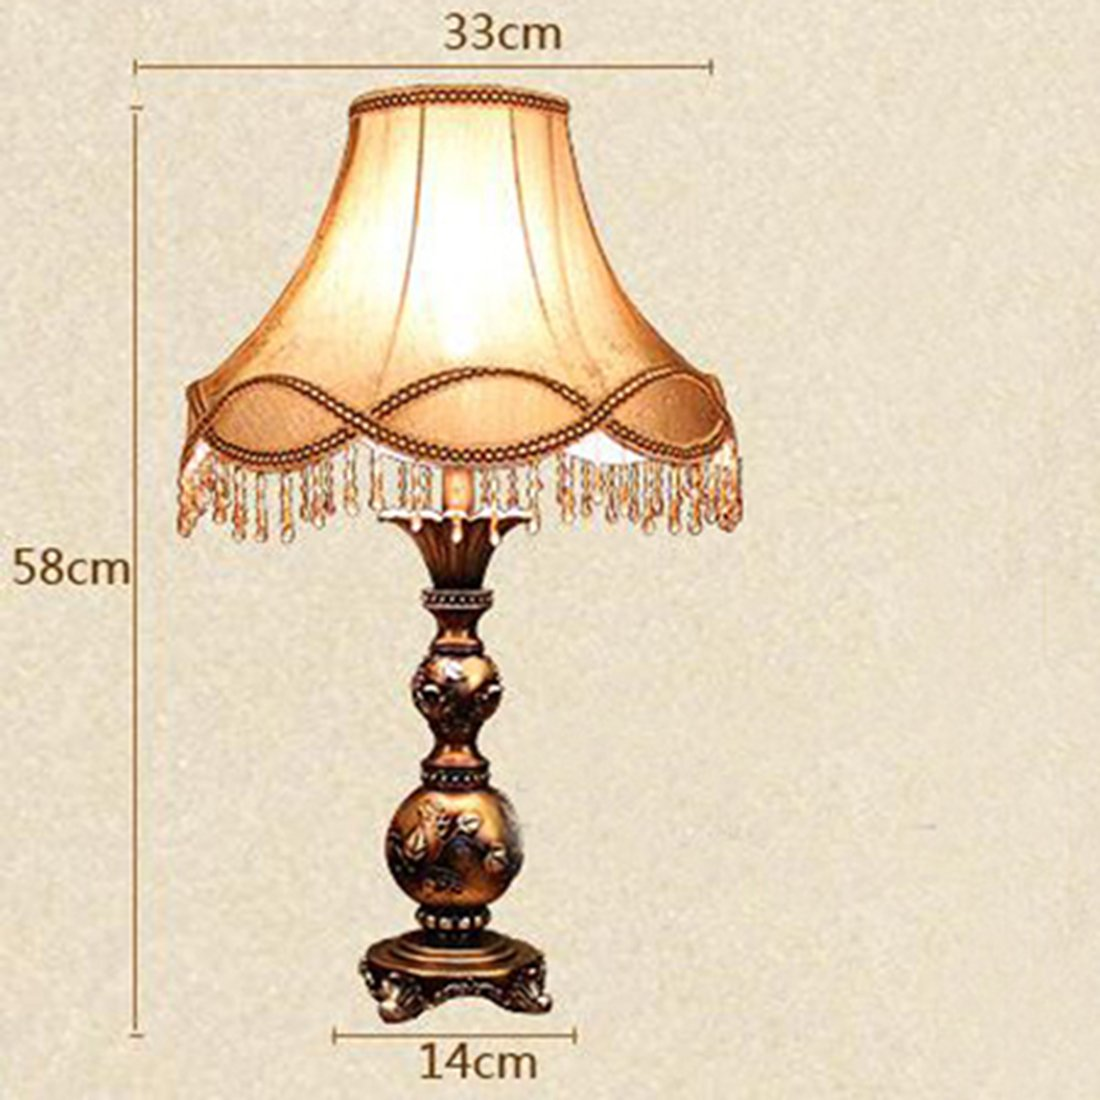 European Palace Style Table Lamp Classic Bedroom Bedside Decorative Desk Light Living Room Luxury Antique Resin Lighting Fixture